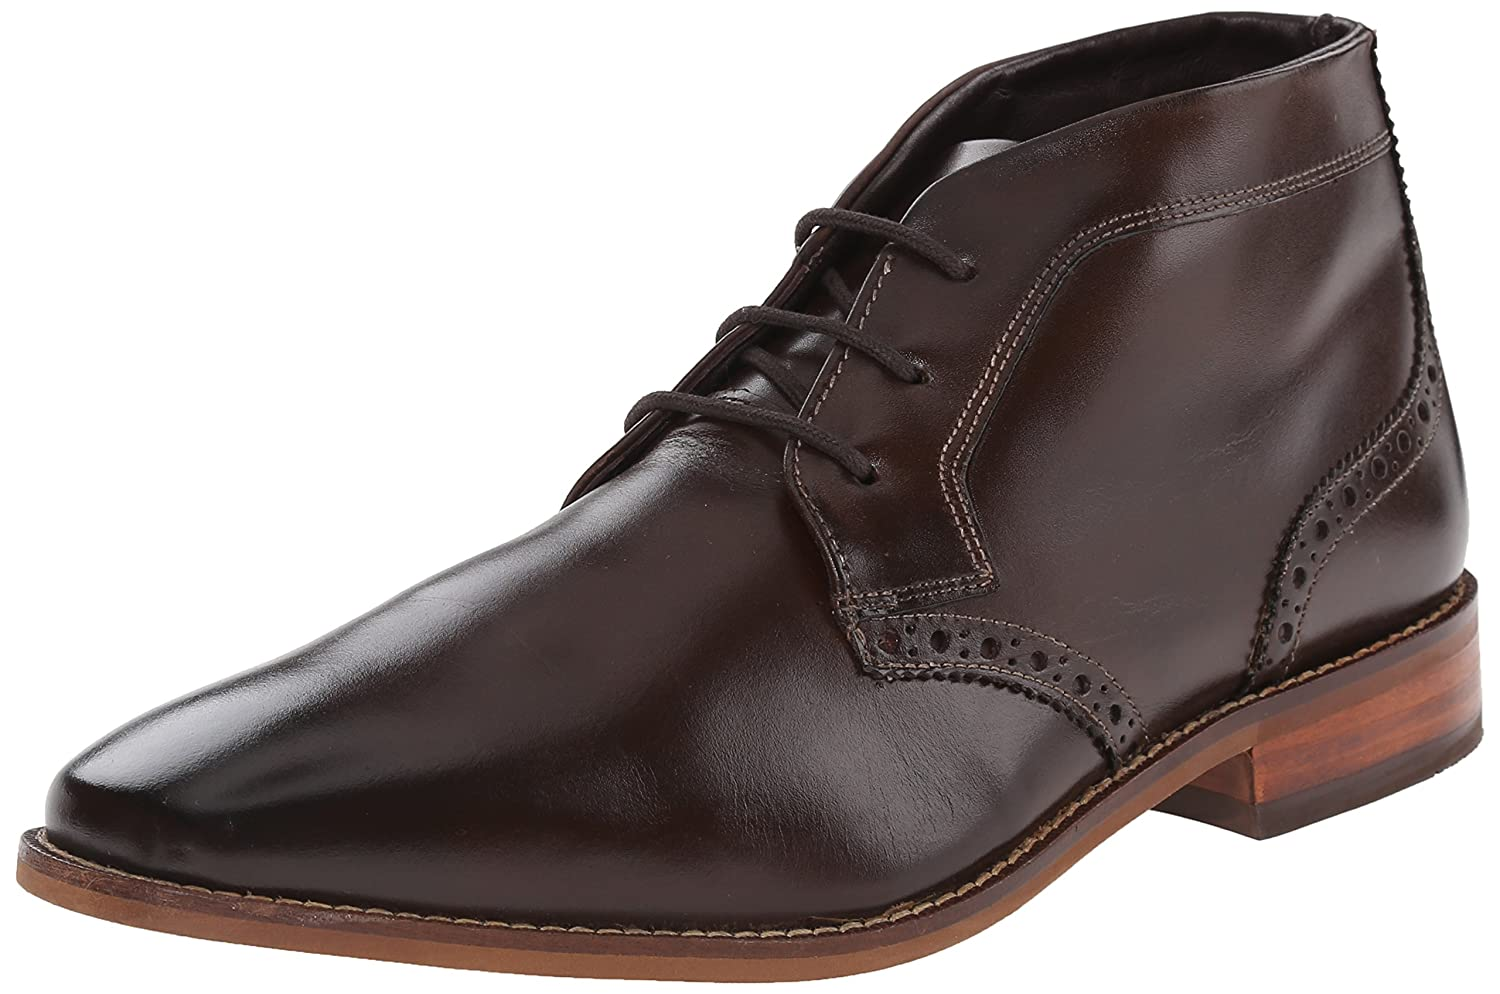 Florsheim Men's Castellano Chukka Boot